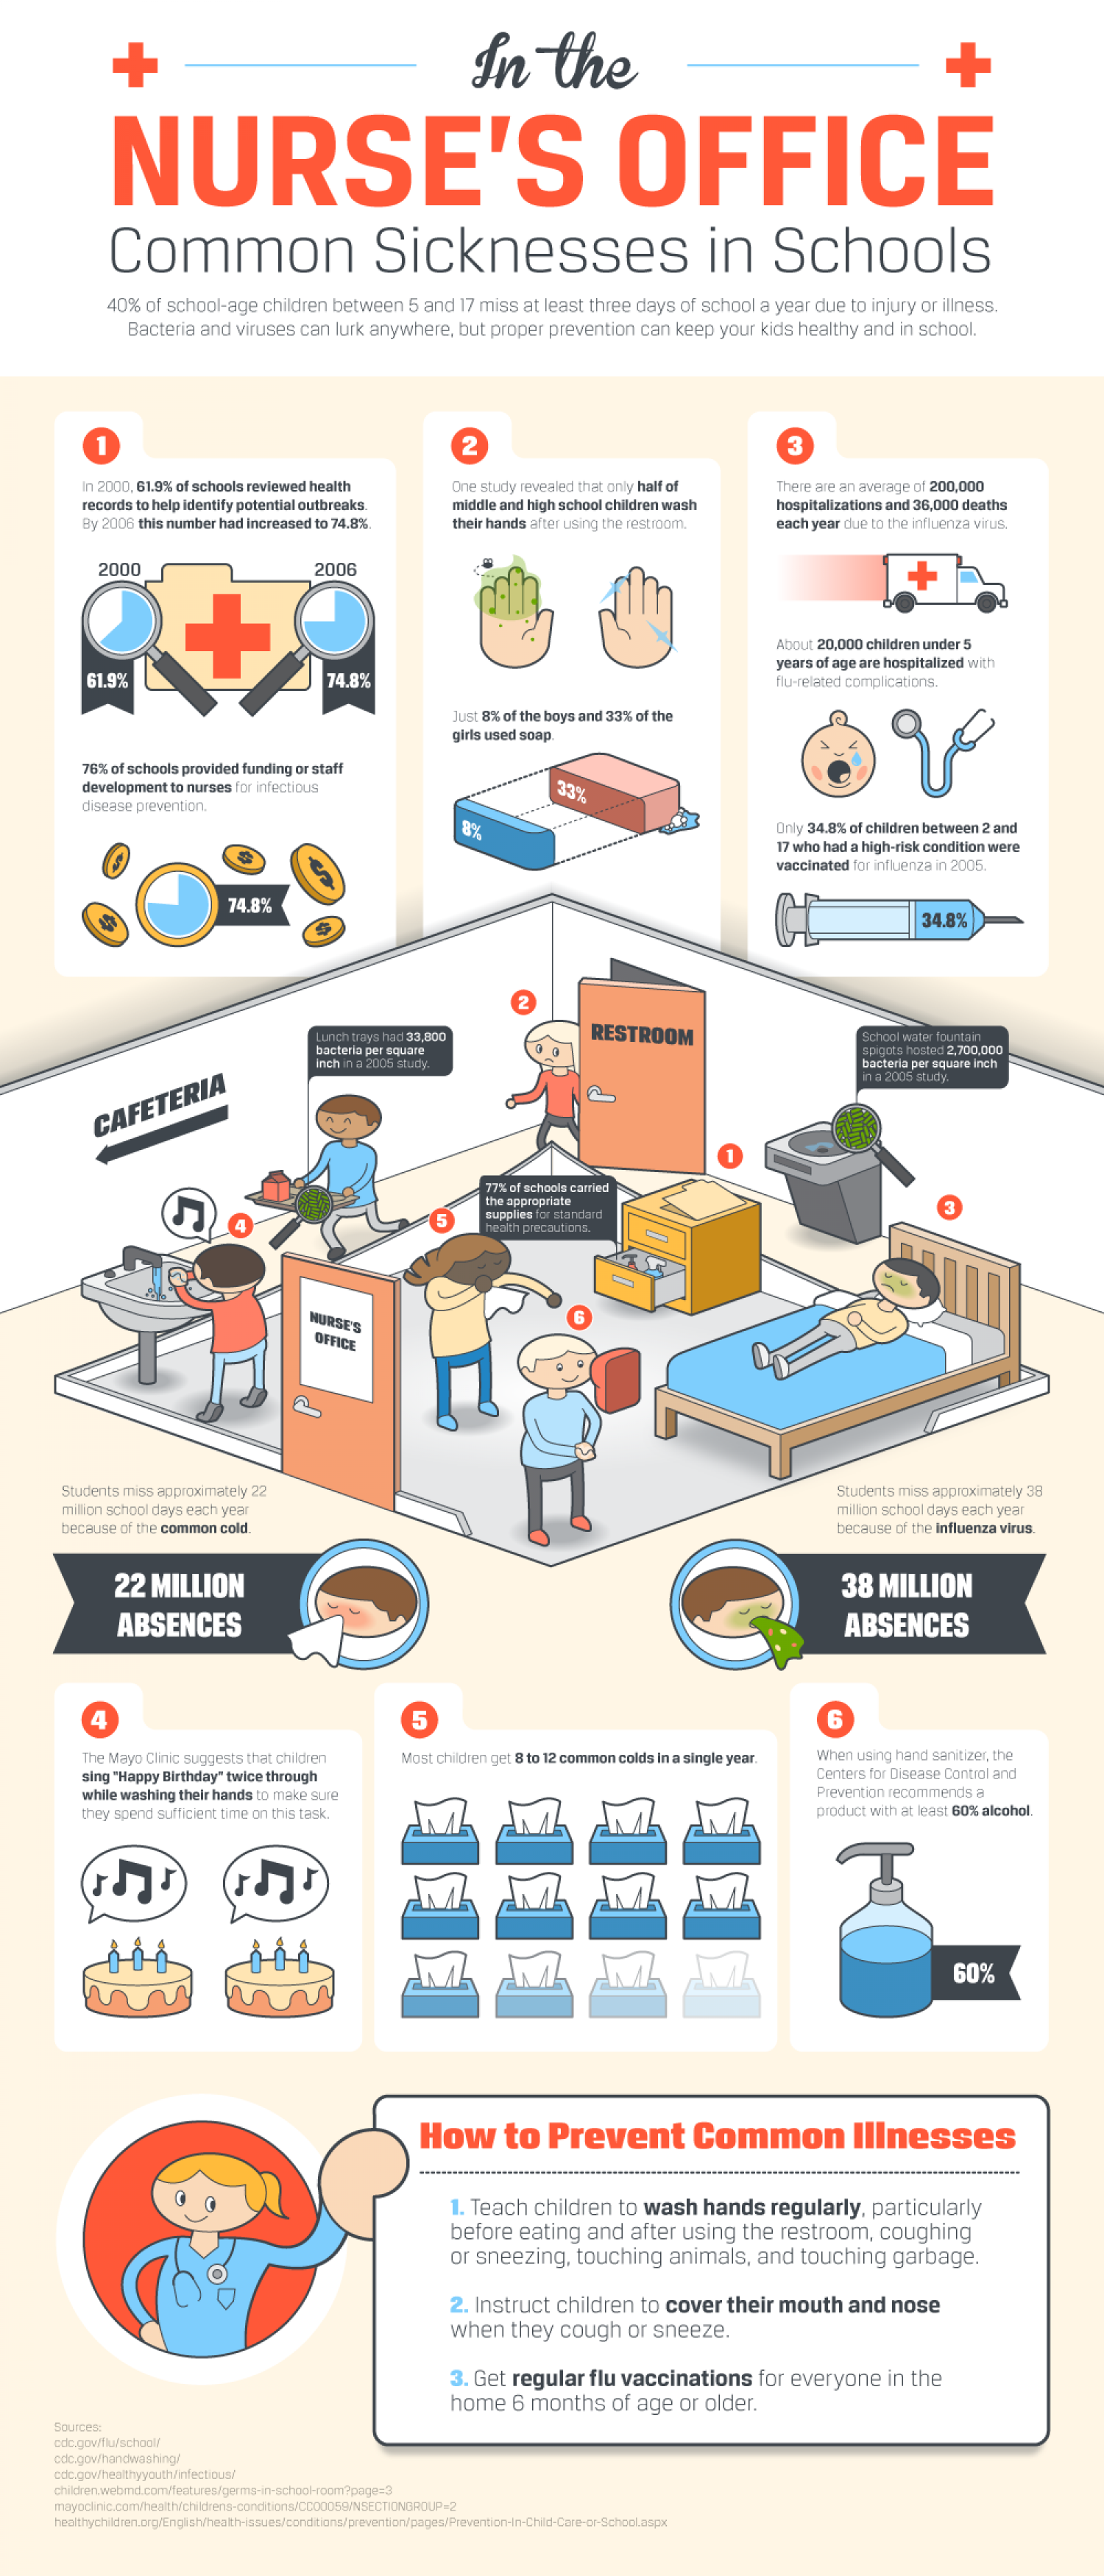 In the Nurse's Office: Common Sicknesses in Schools Infographic